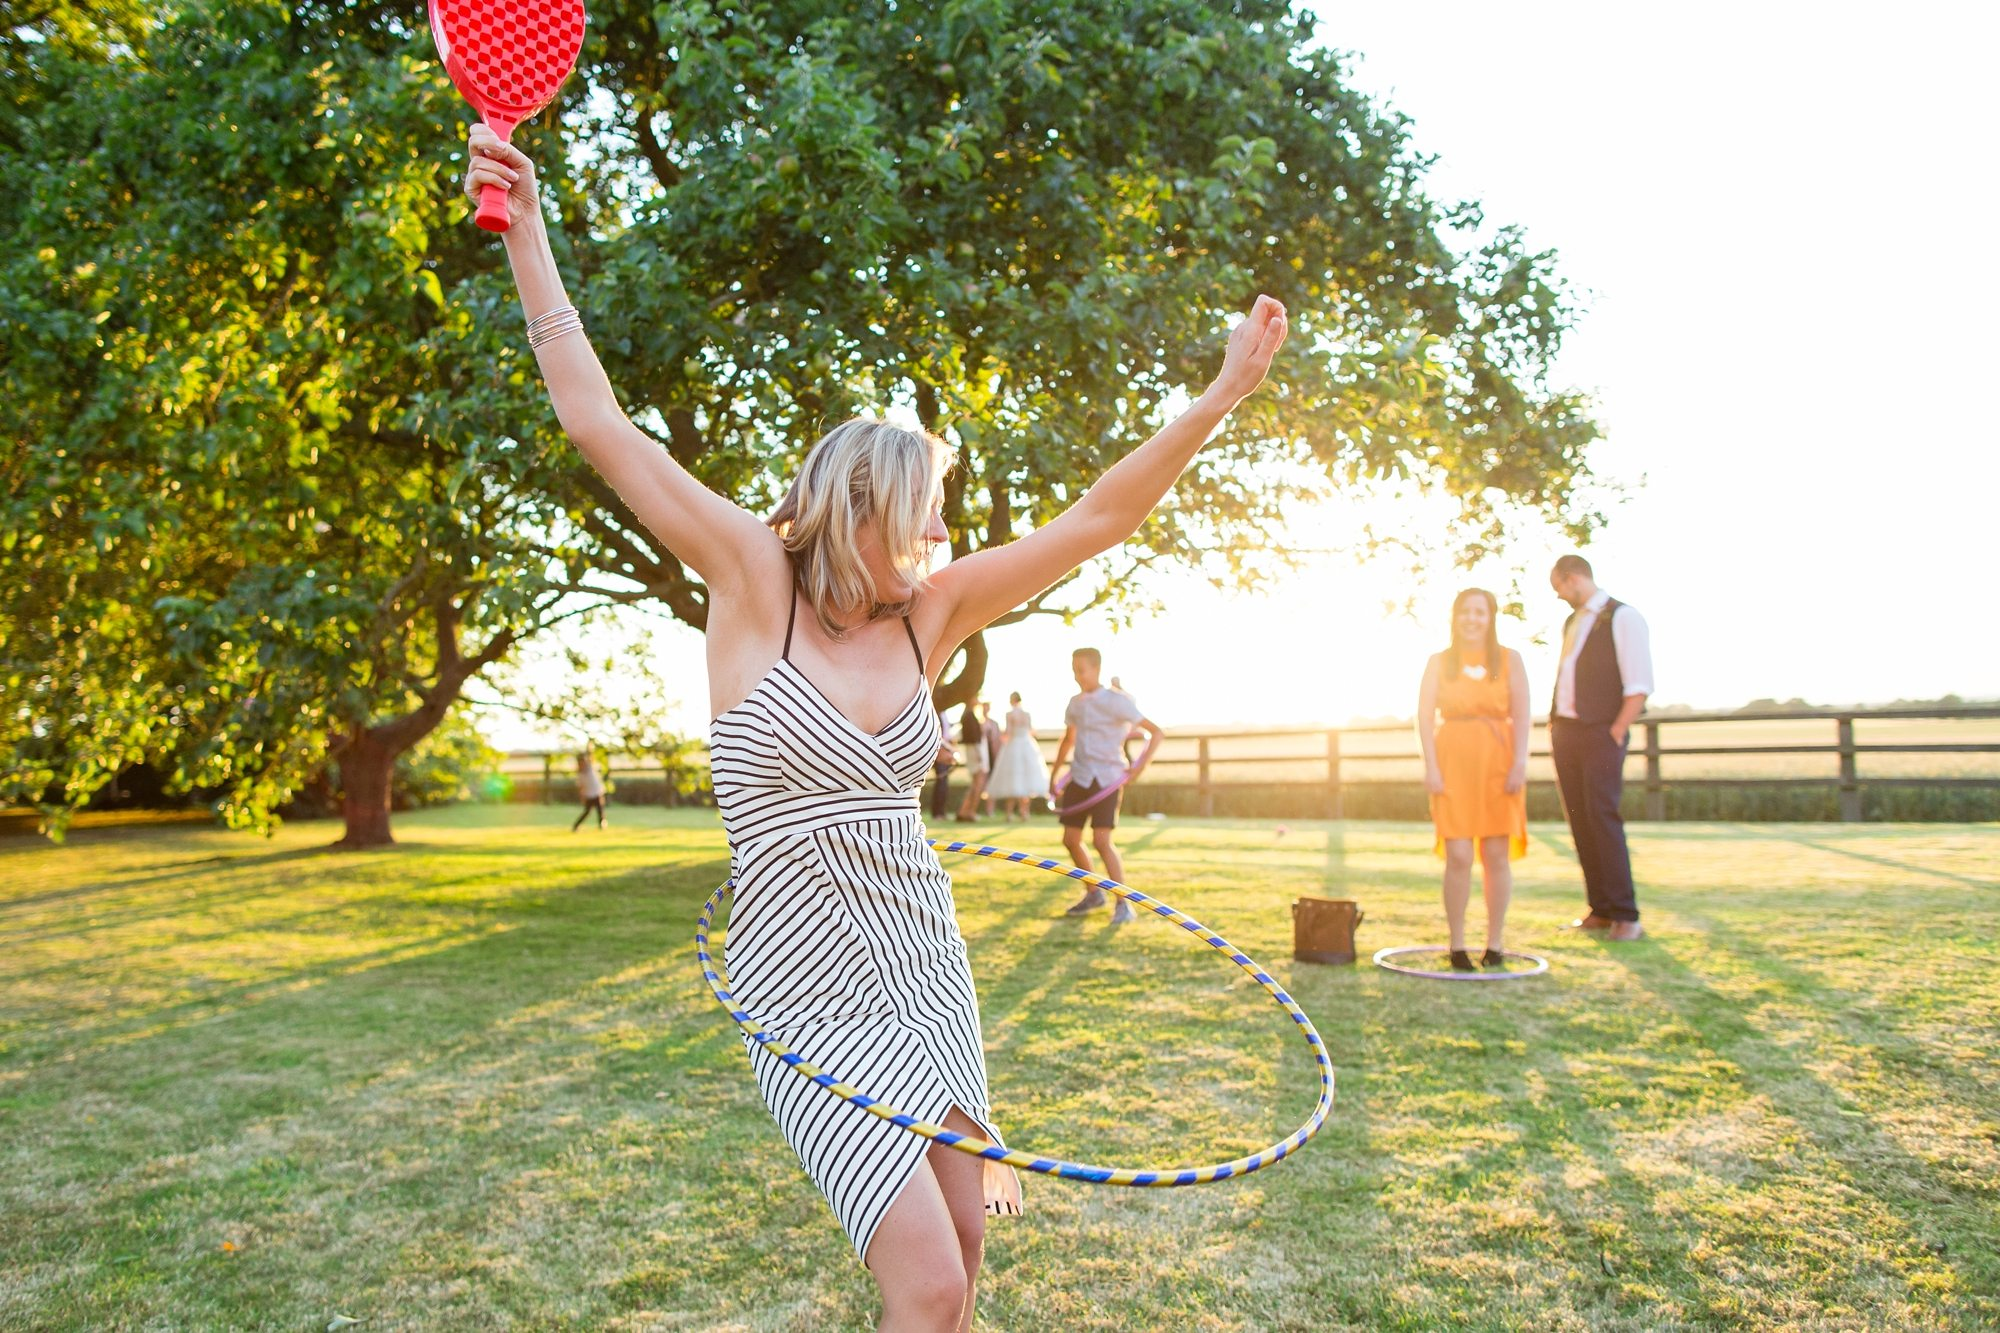 wedding guest with hula hoop during sunset at York wedding